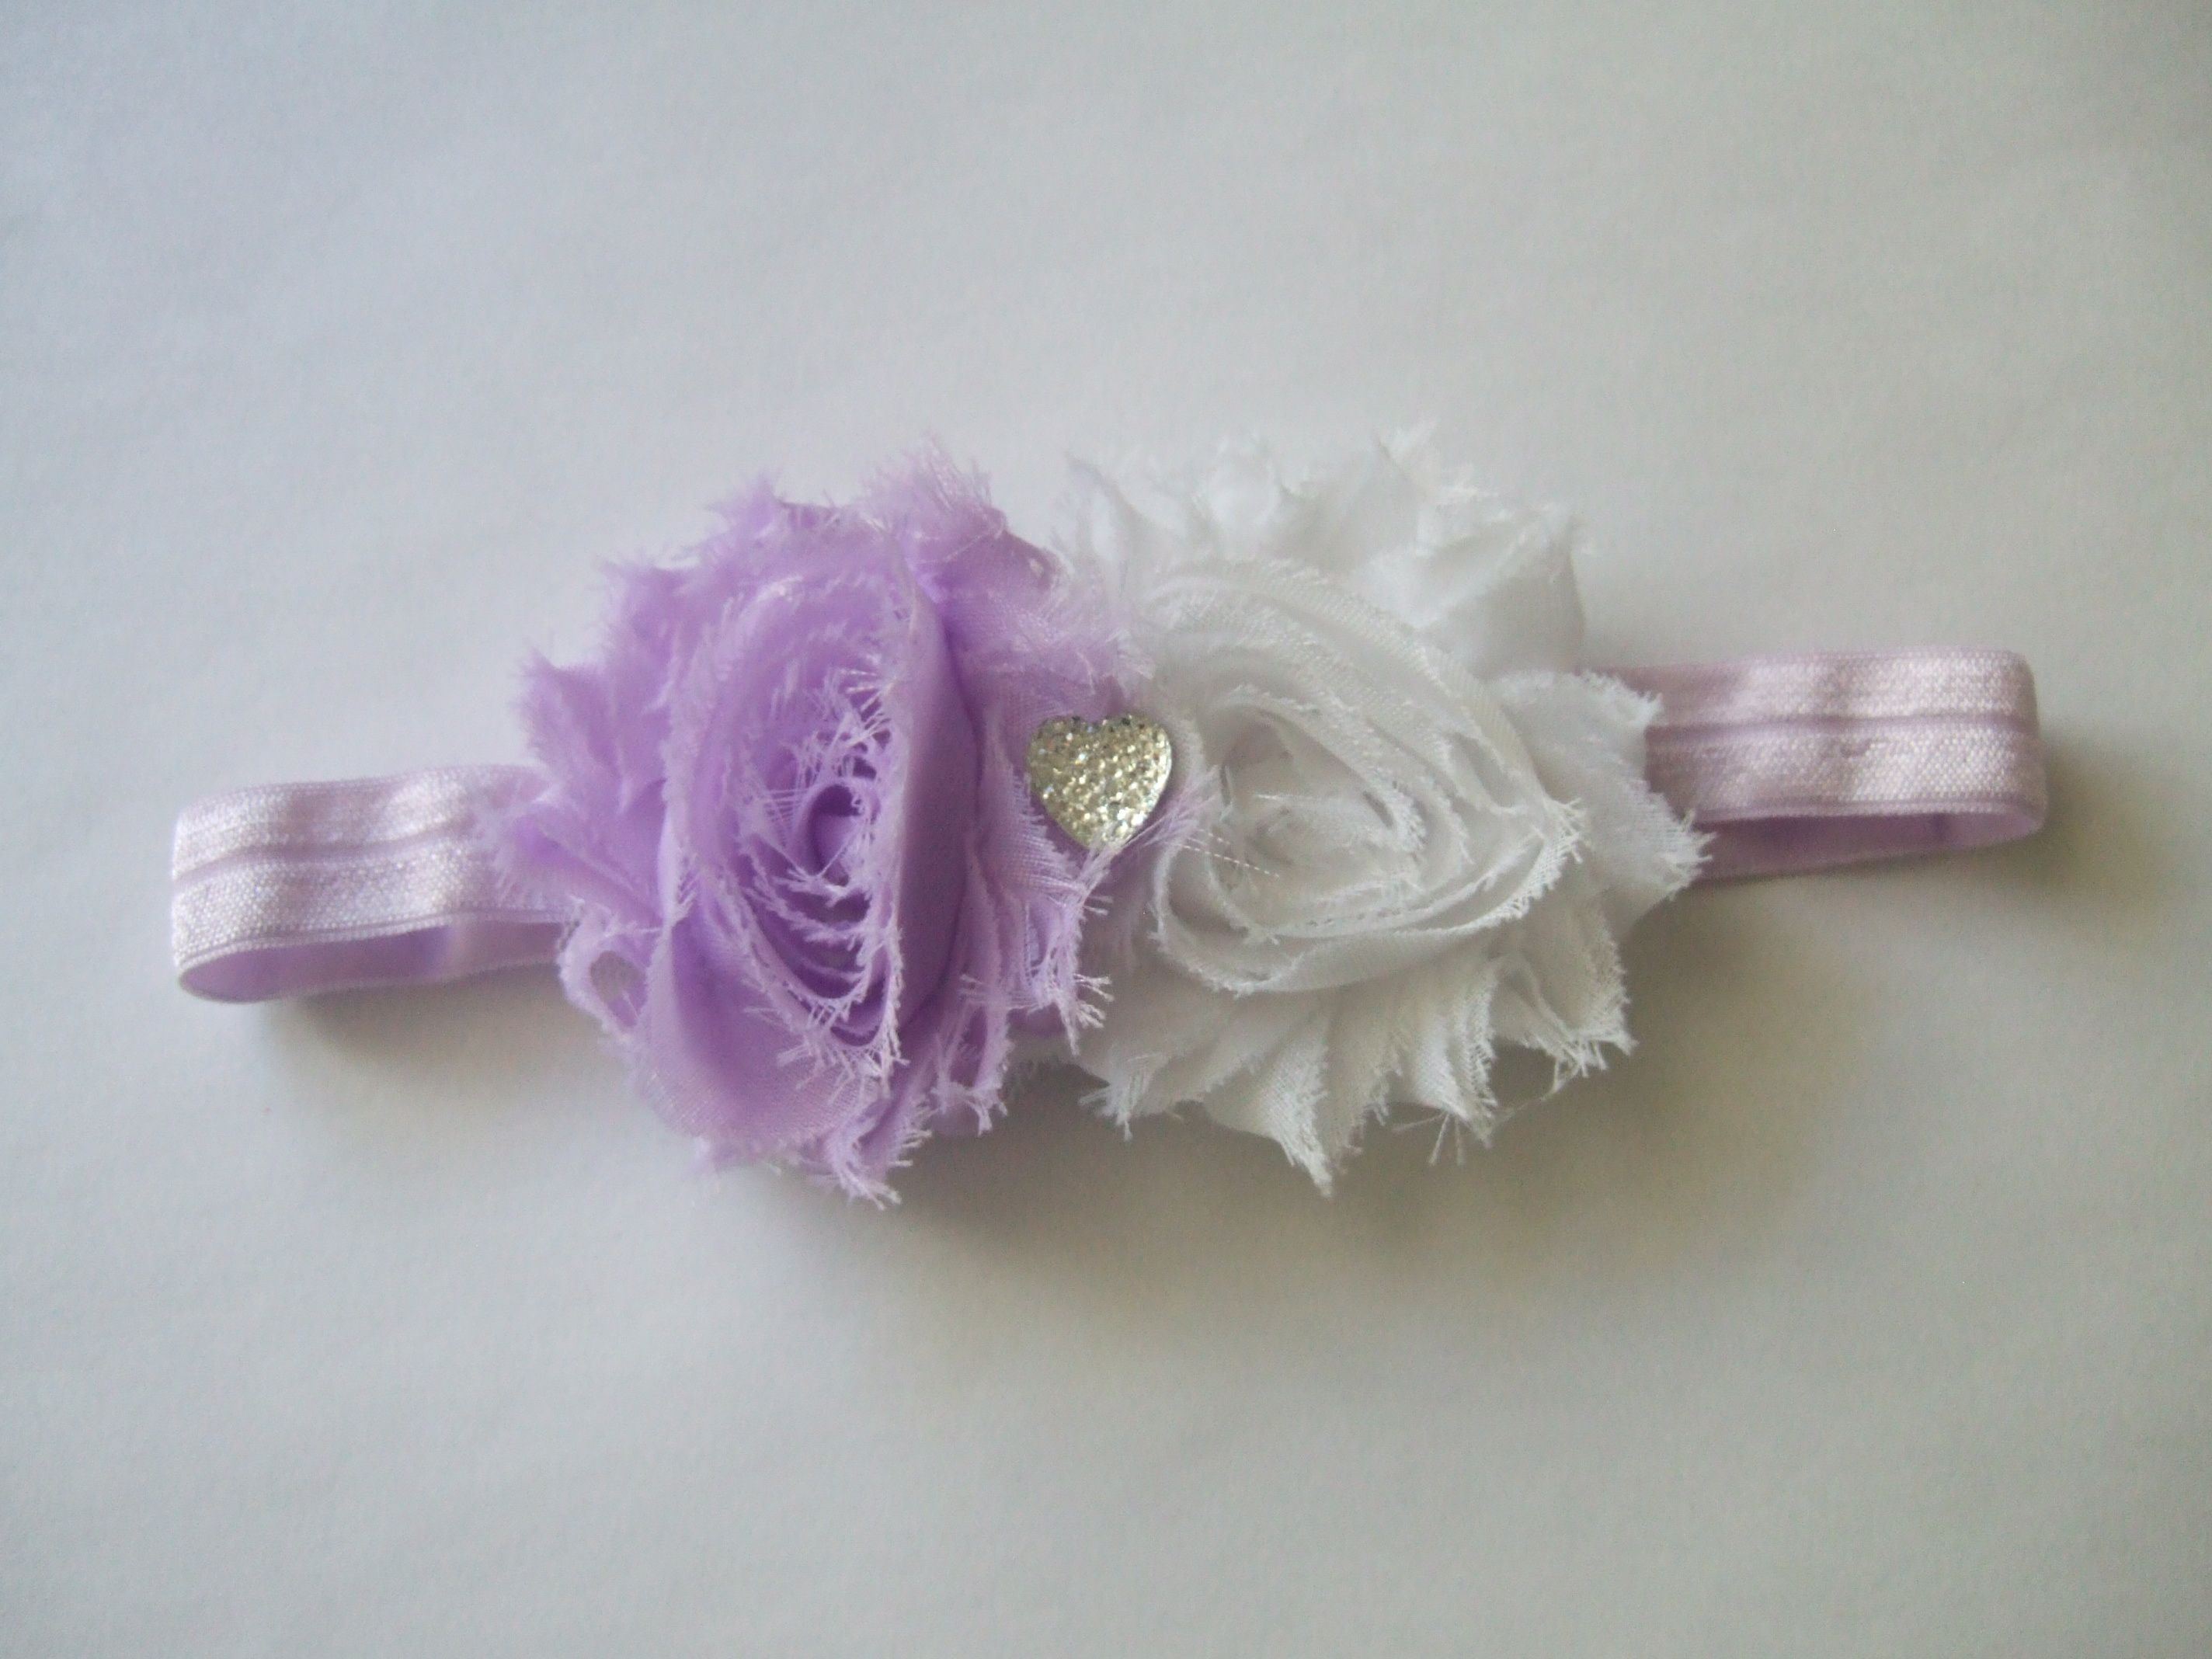 Shabby Flowers with Heart Rhinestone Headband- $7.50 www.facebook.com/justaboutbows